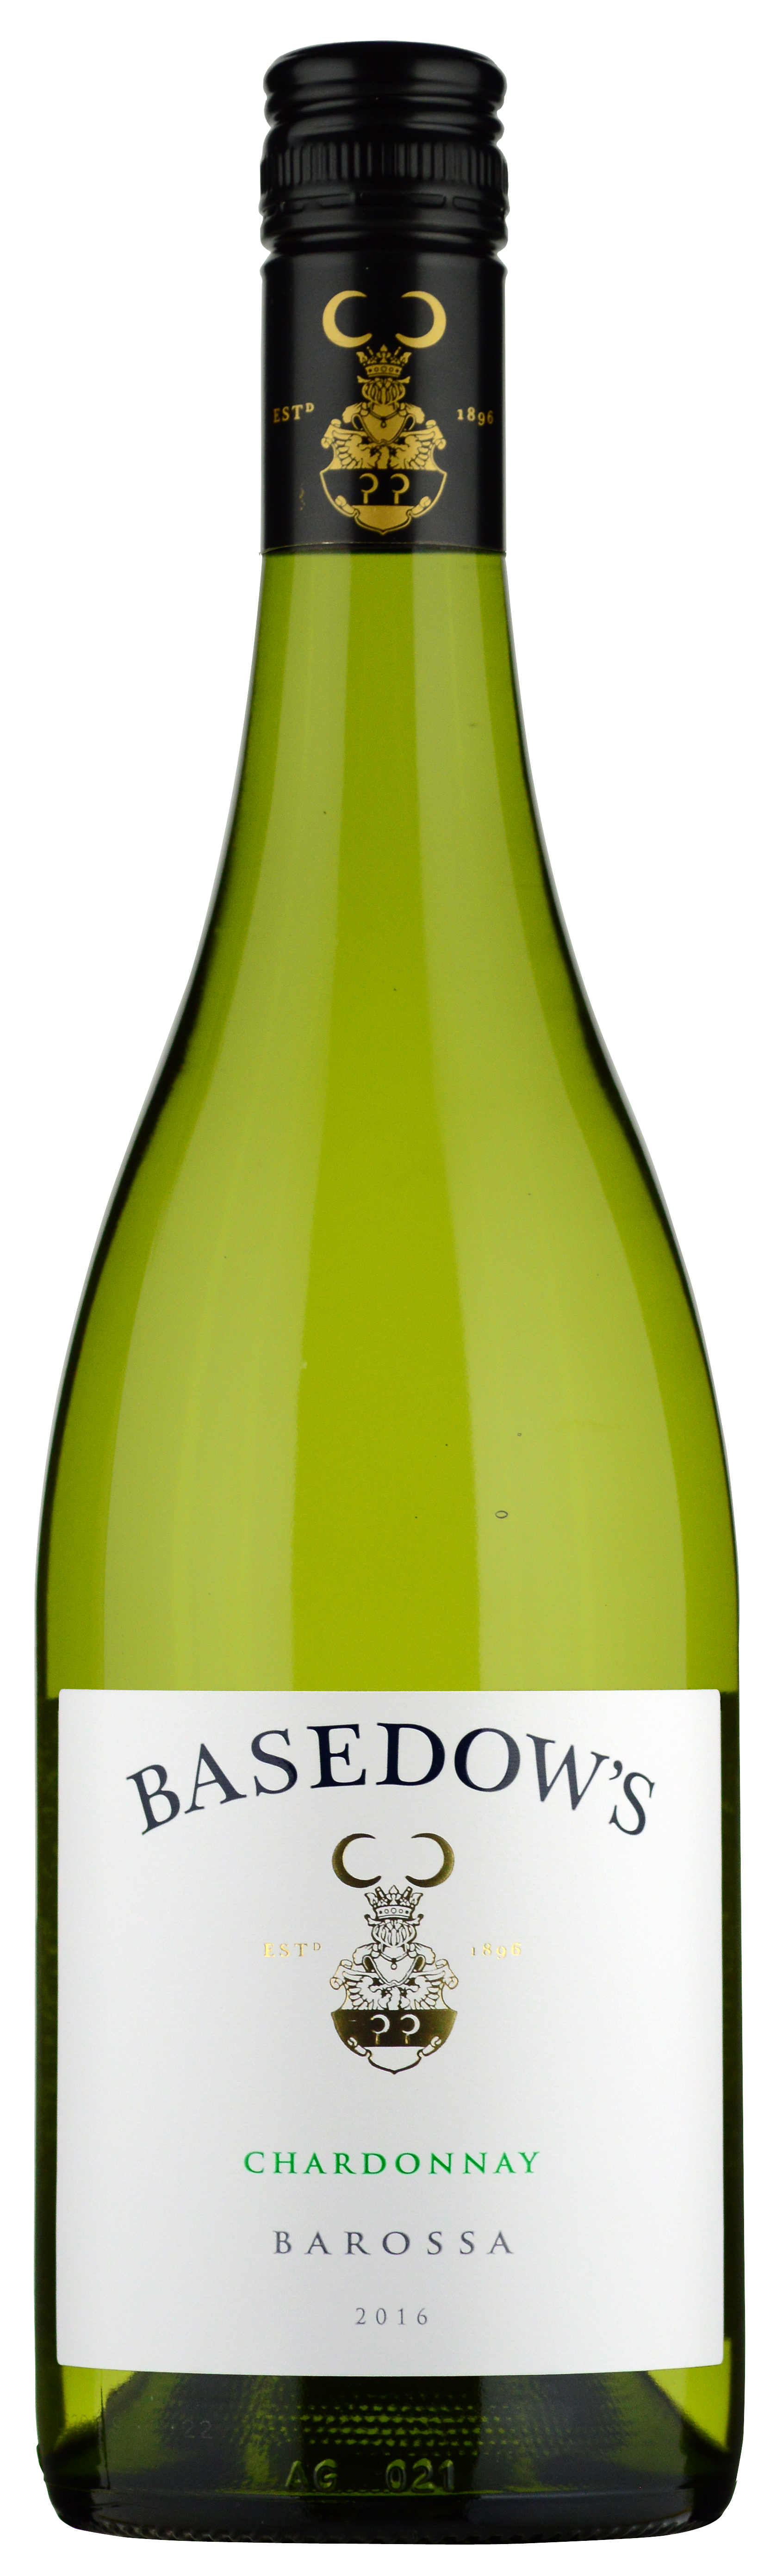 Basedow's Chardonnay 2016 (12 x 750mL) Barossa Valley SA